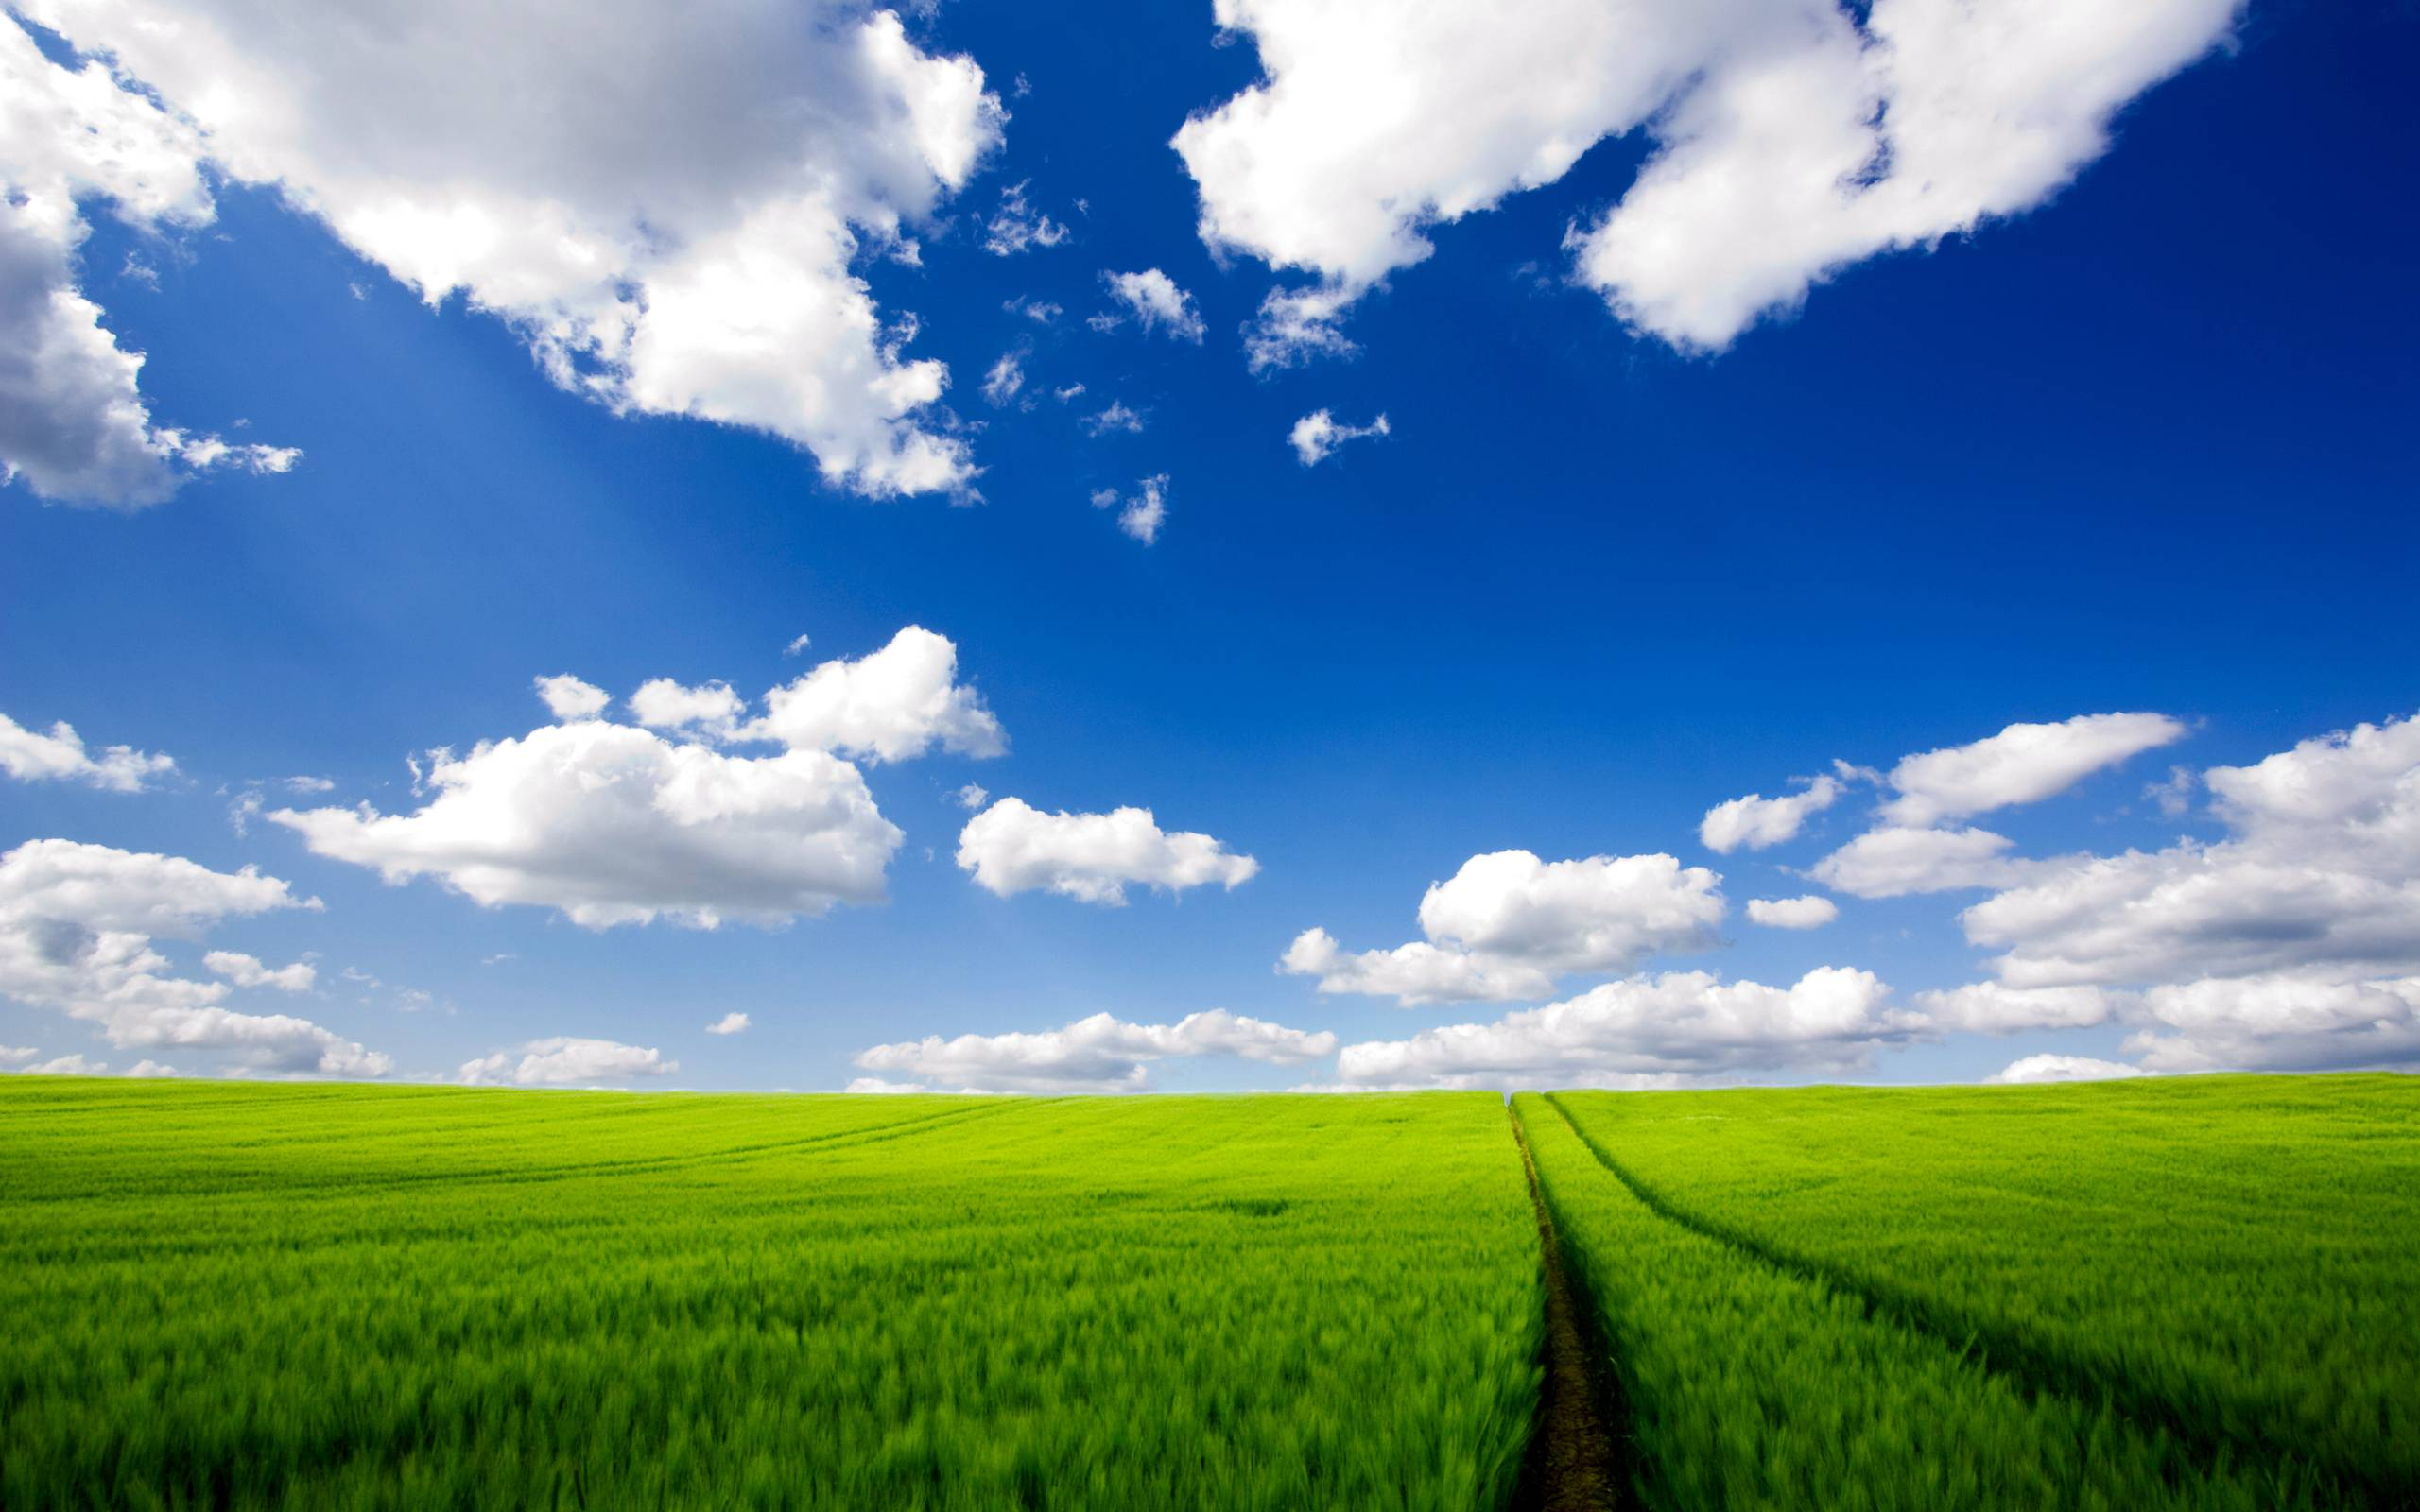 Clouds landscapes nature sky bliss fields meadow wallpaper HQ WALLPAPER - (#5186)